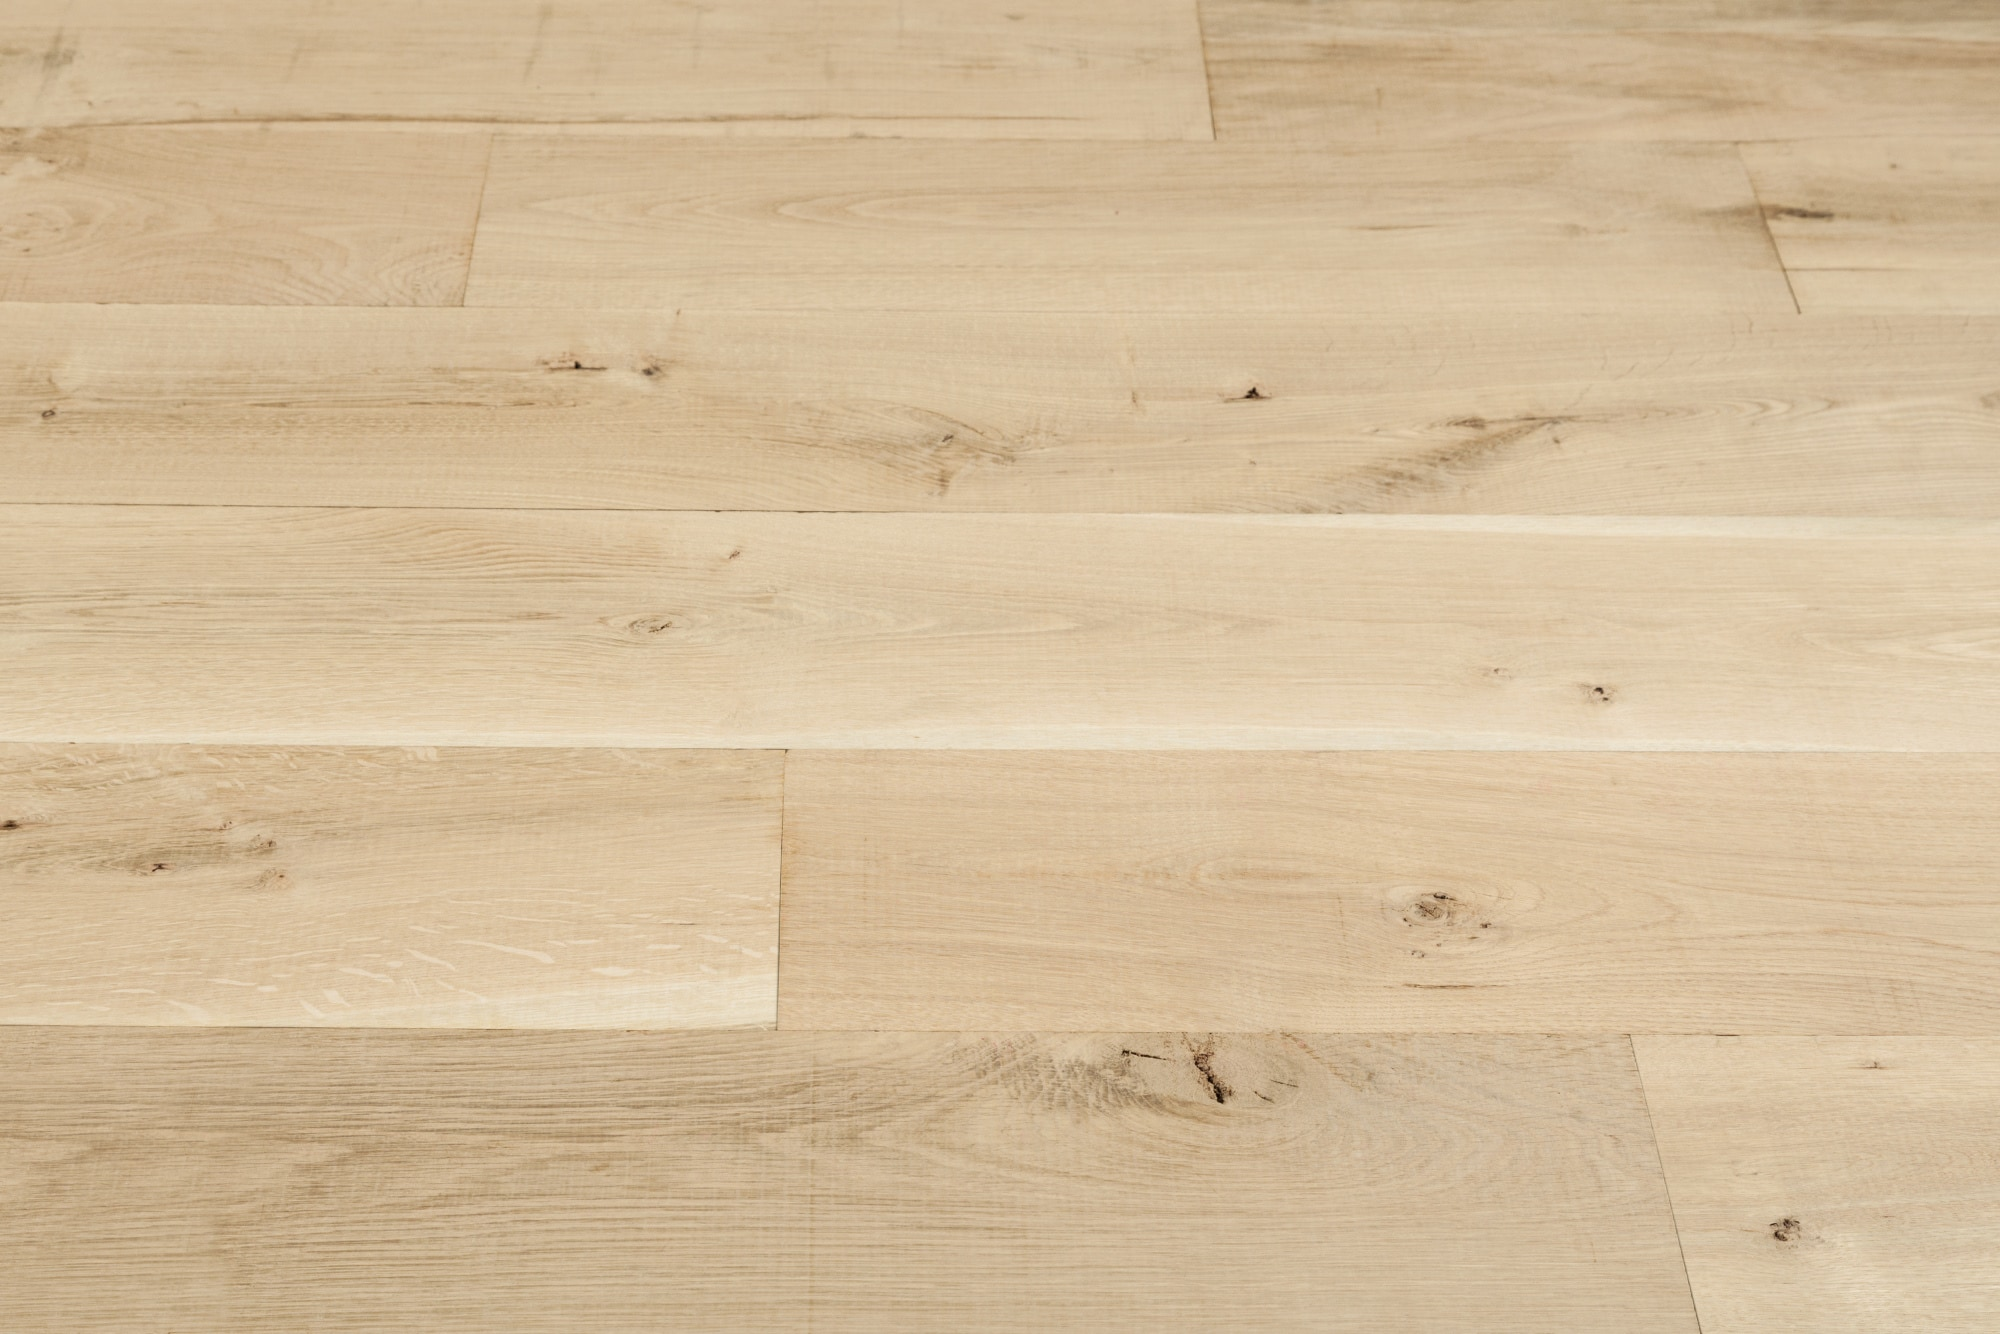 b basic natural brushed floors white bkm en wood mafi flooring product by oil oak eiche and from antique enbd